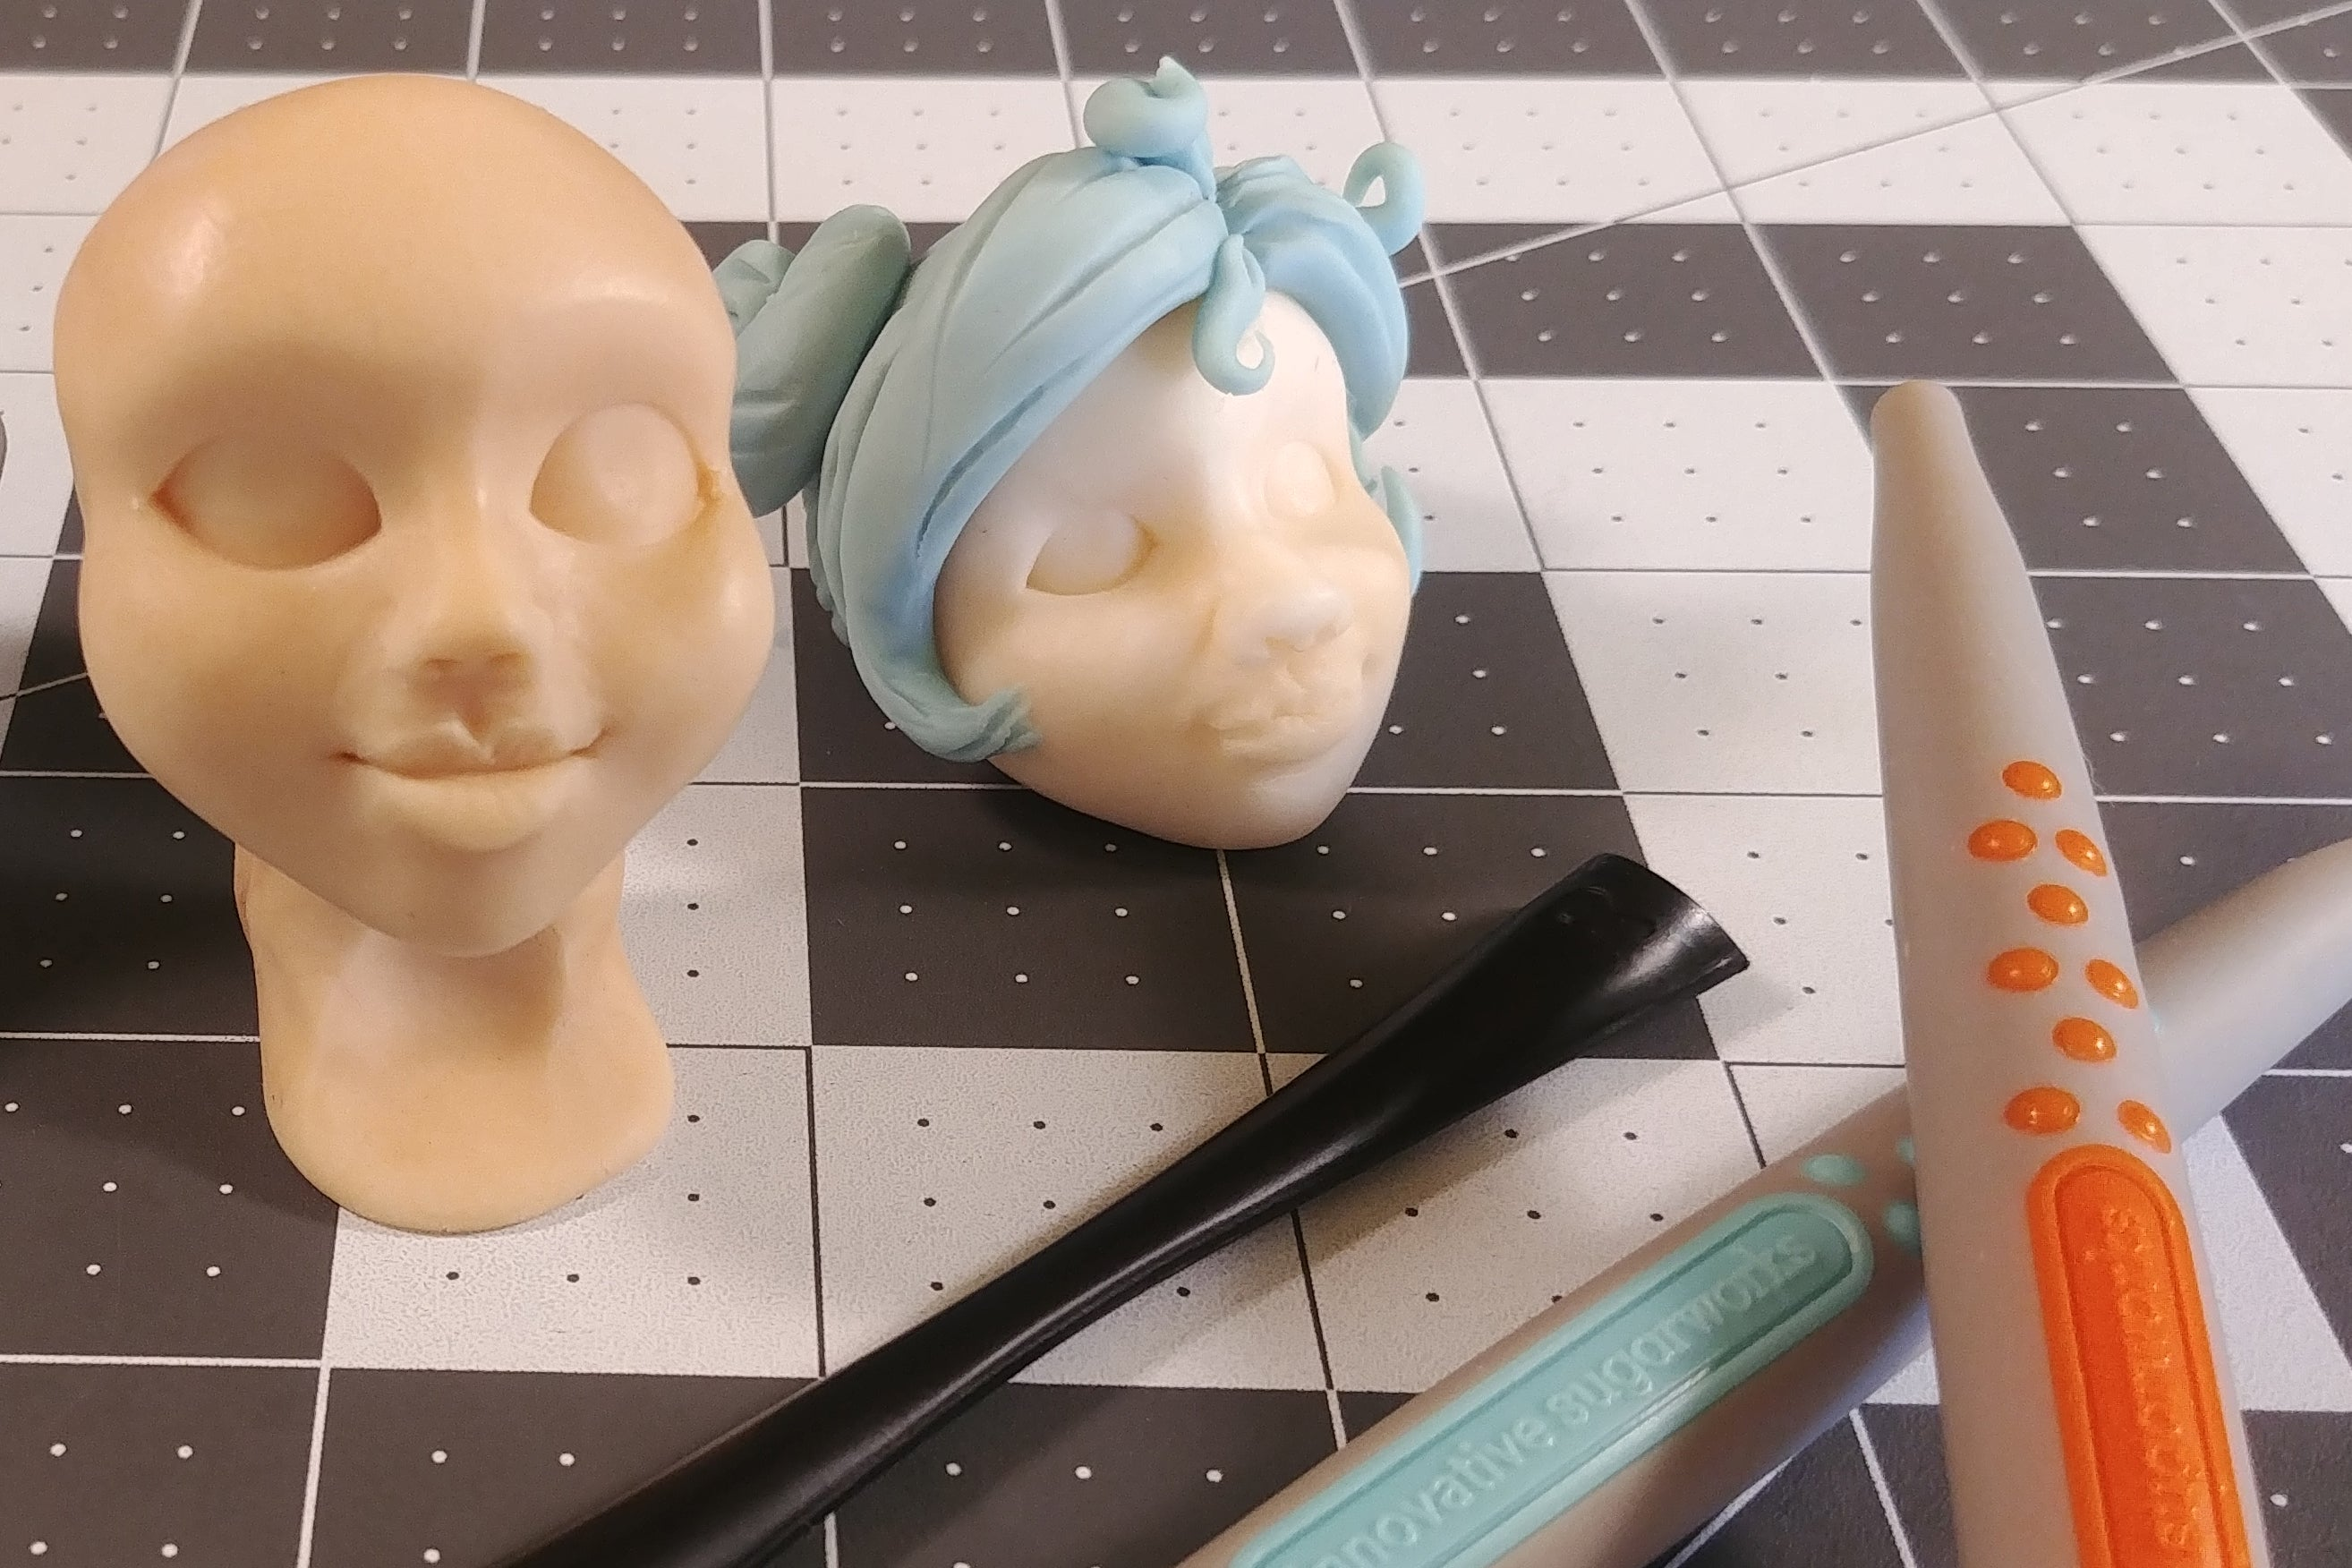 Face Sculpting with Sugar Shapers, TLook, and Jamie Louks